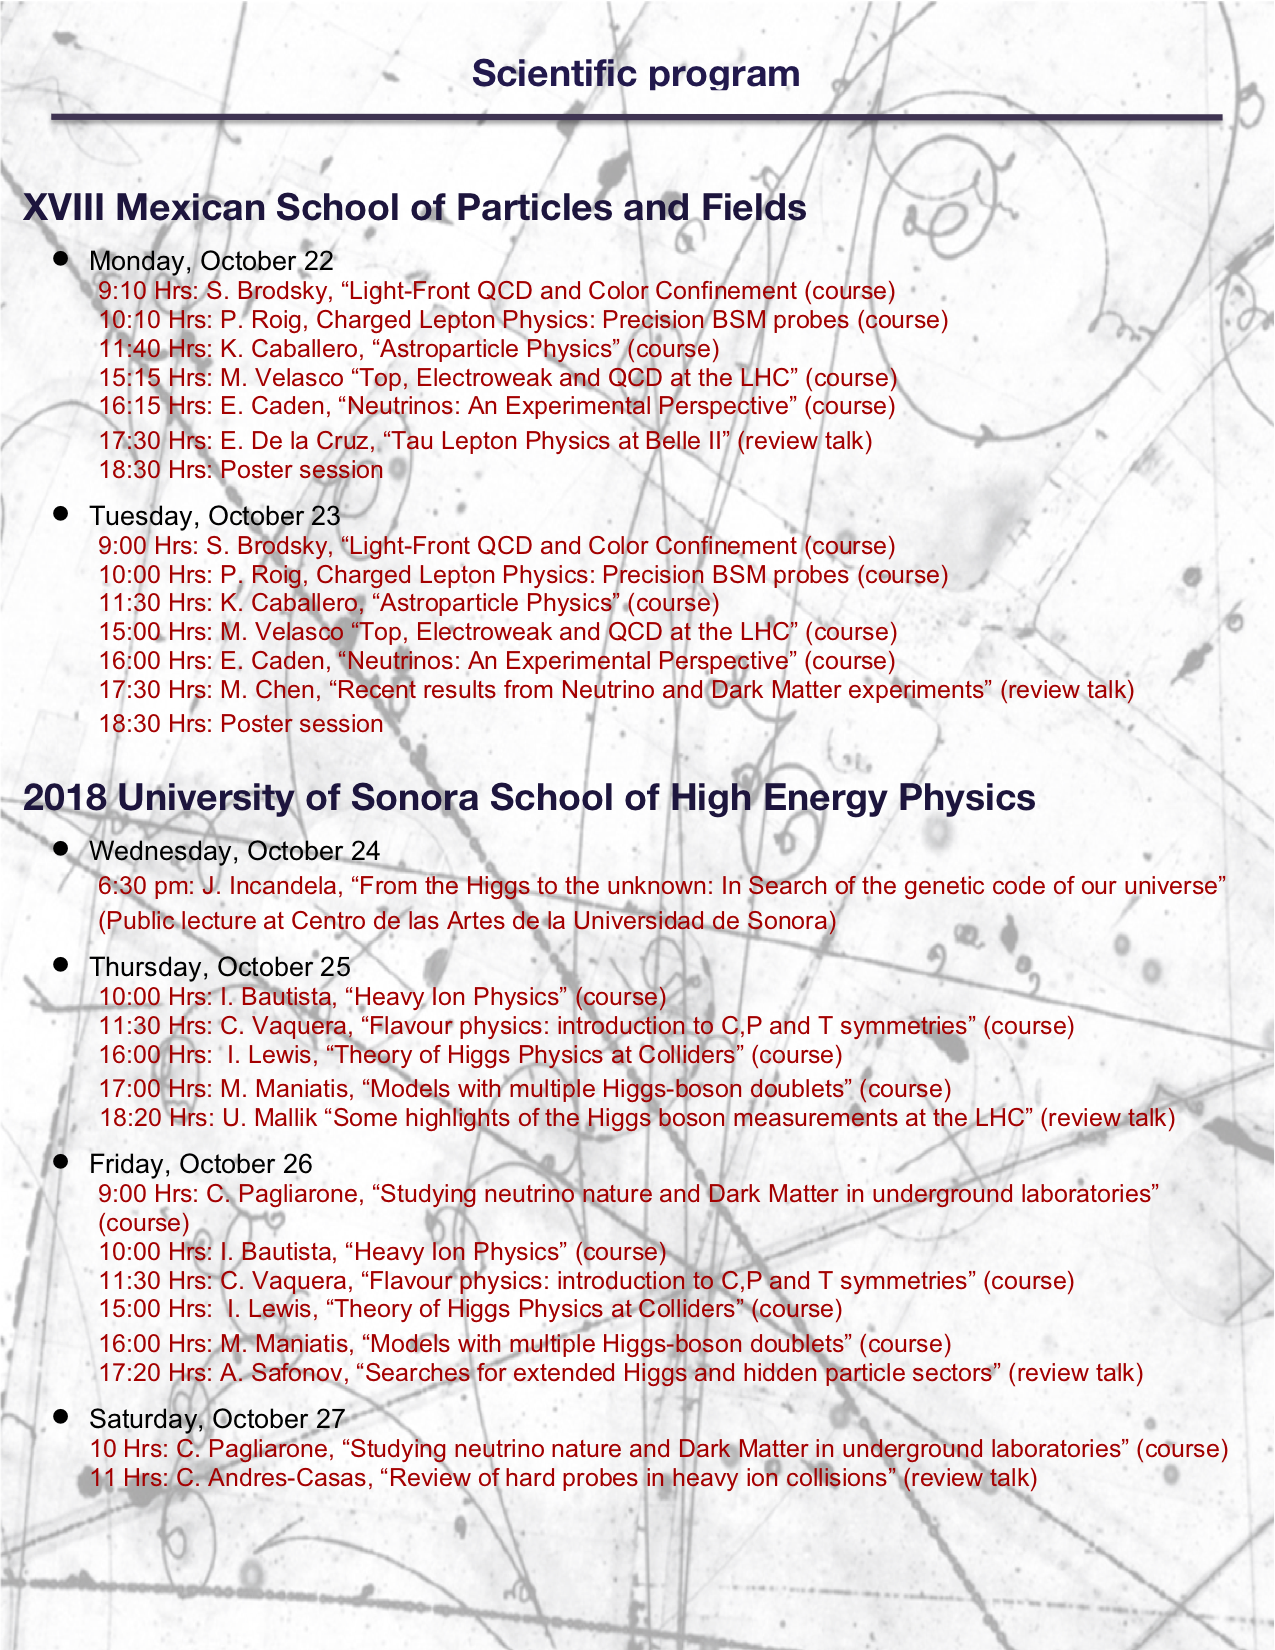 Xviii Mexican School Of Particles And Fields And 2018